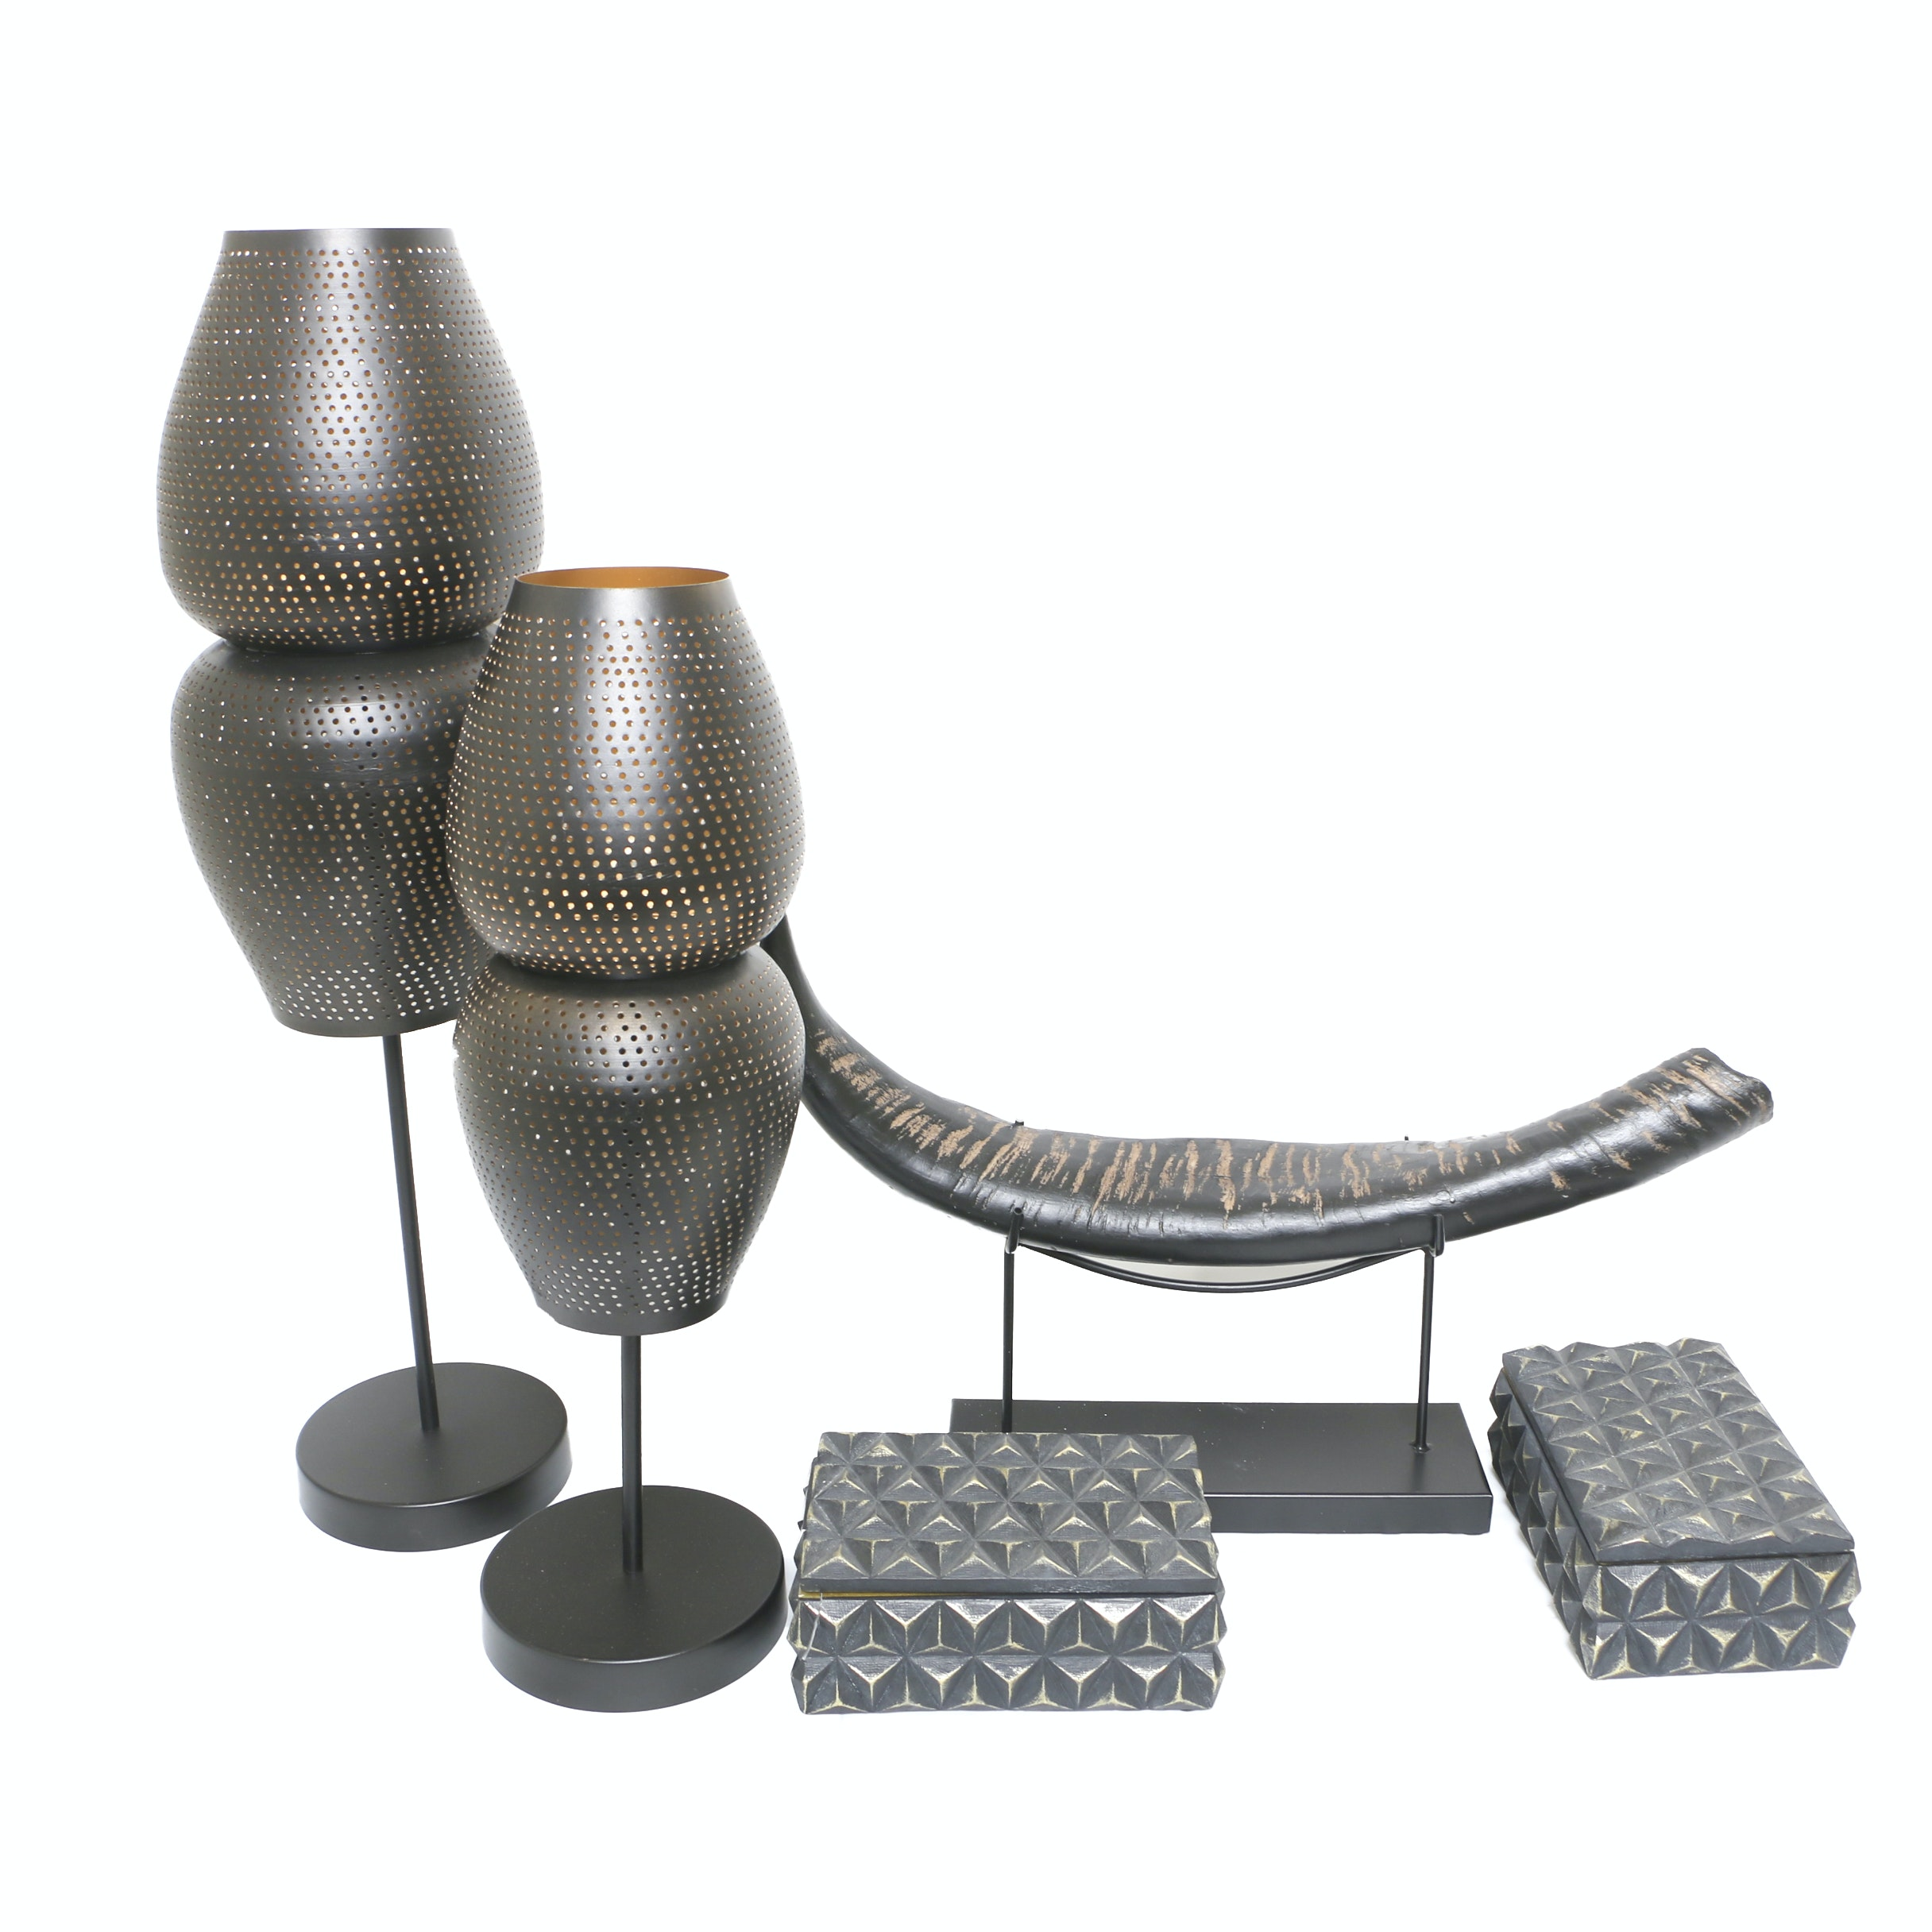 Pierced Metal Candleholders with Decorative Boxes and Faux Horn Display